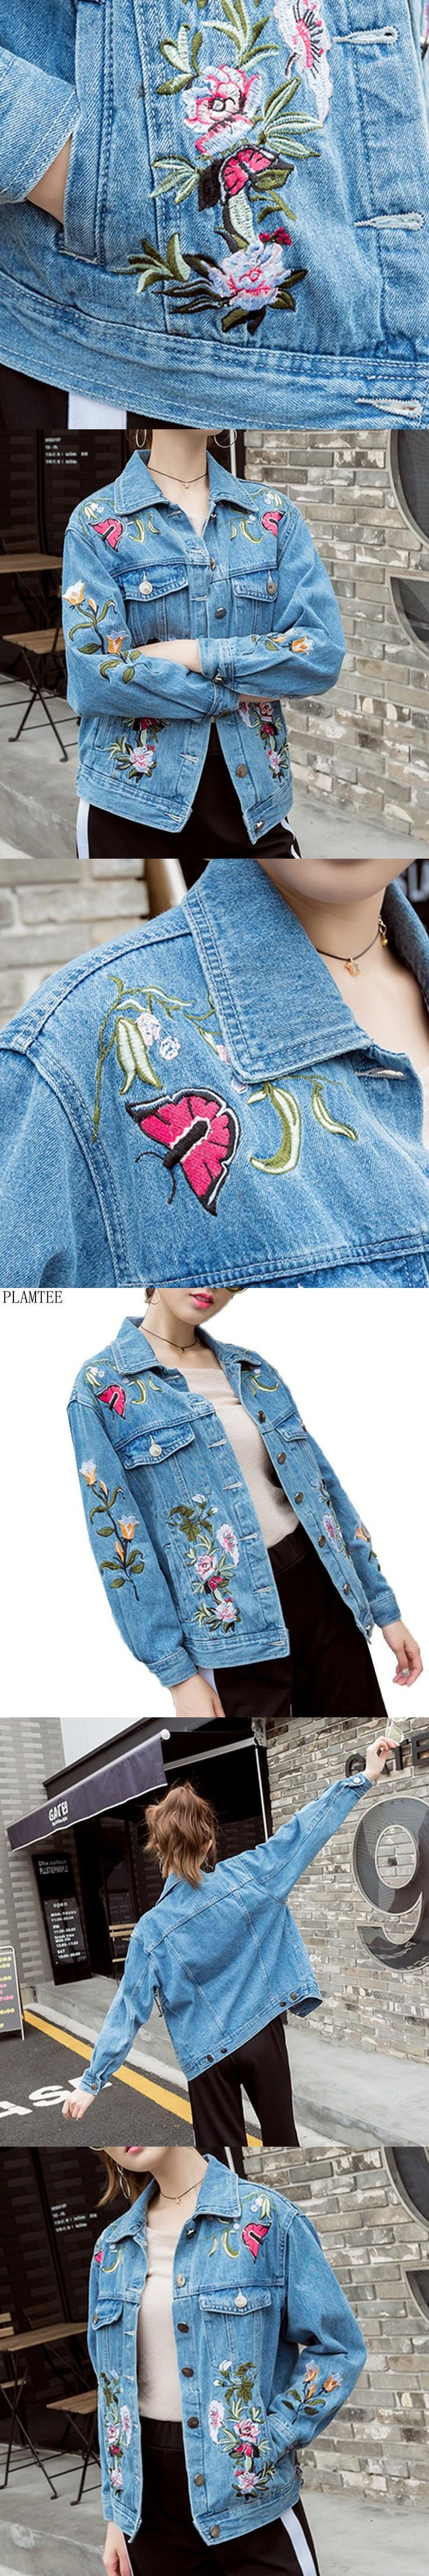 PLAMTEE Exquisite Floral Embroideried Jean Jacket Womens 2017 Casual Long Sleeve Abrigos Mujer Elegant Spring Female Bomber S~XL